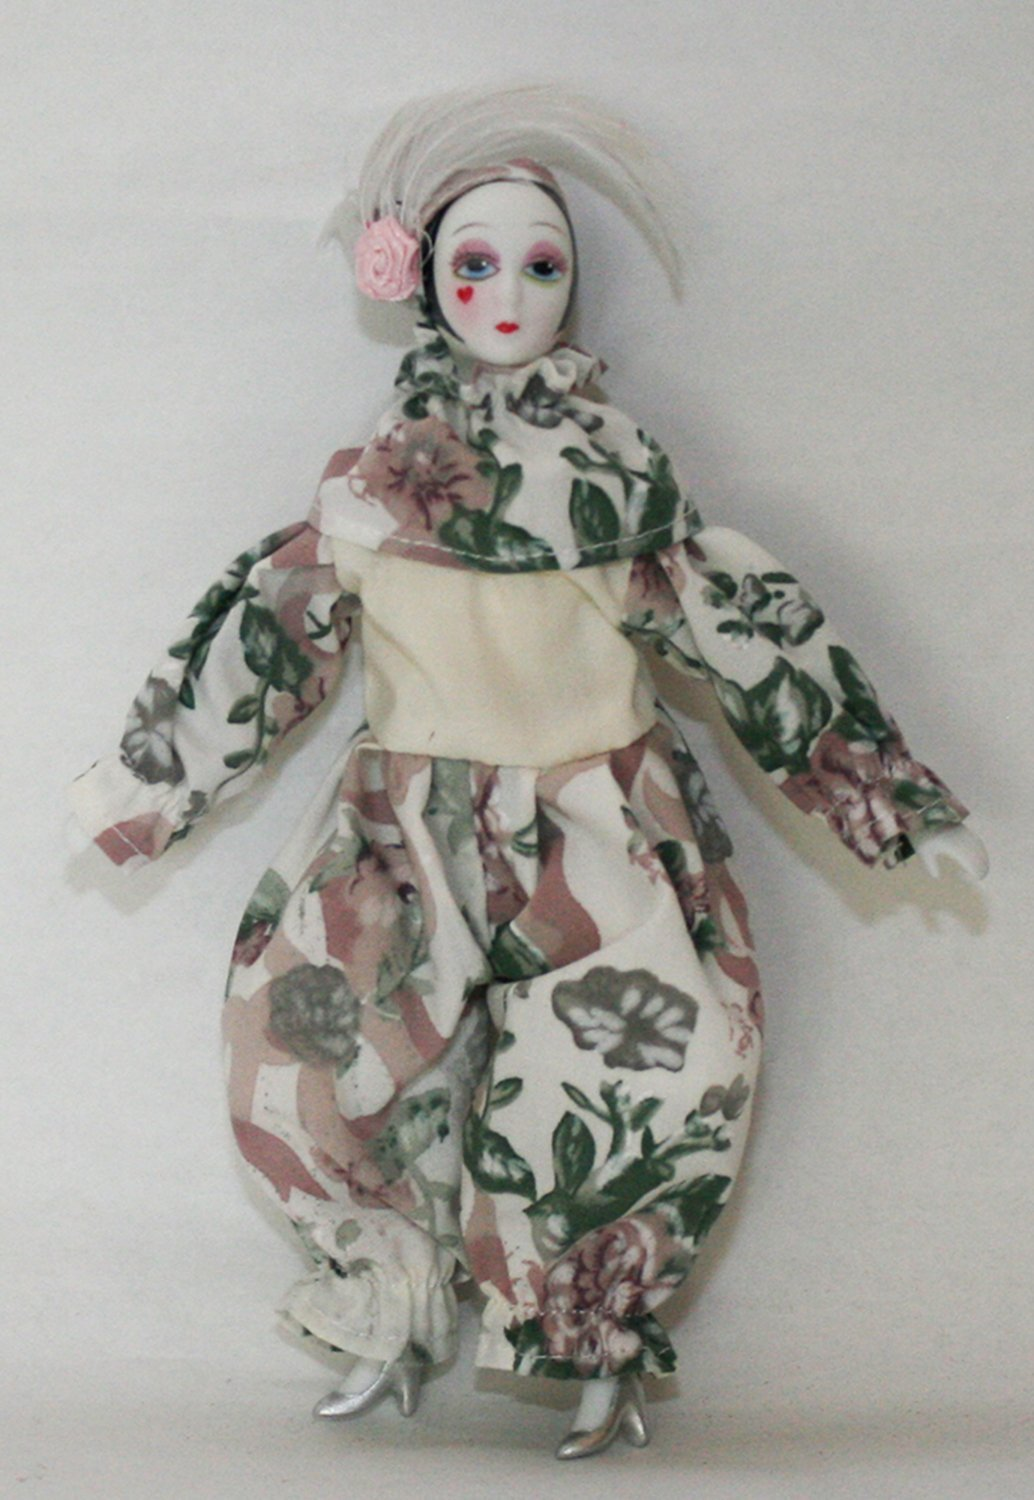 Buy Porcelain Dolls 5 Inches, Pierrot, with Heart on Cheek, Dress